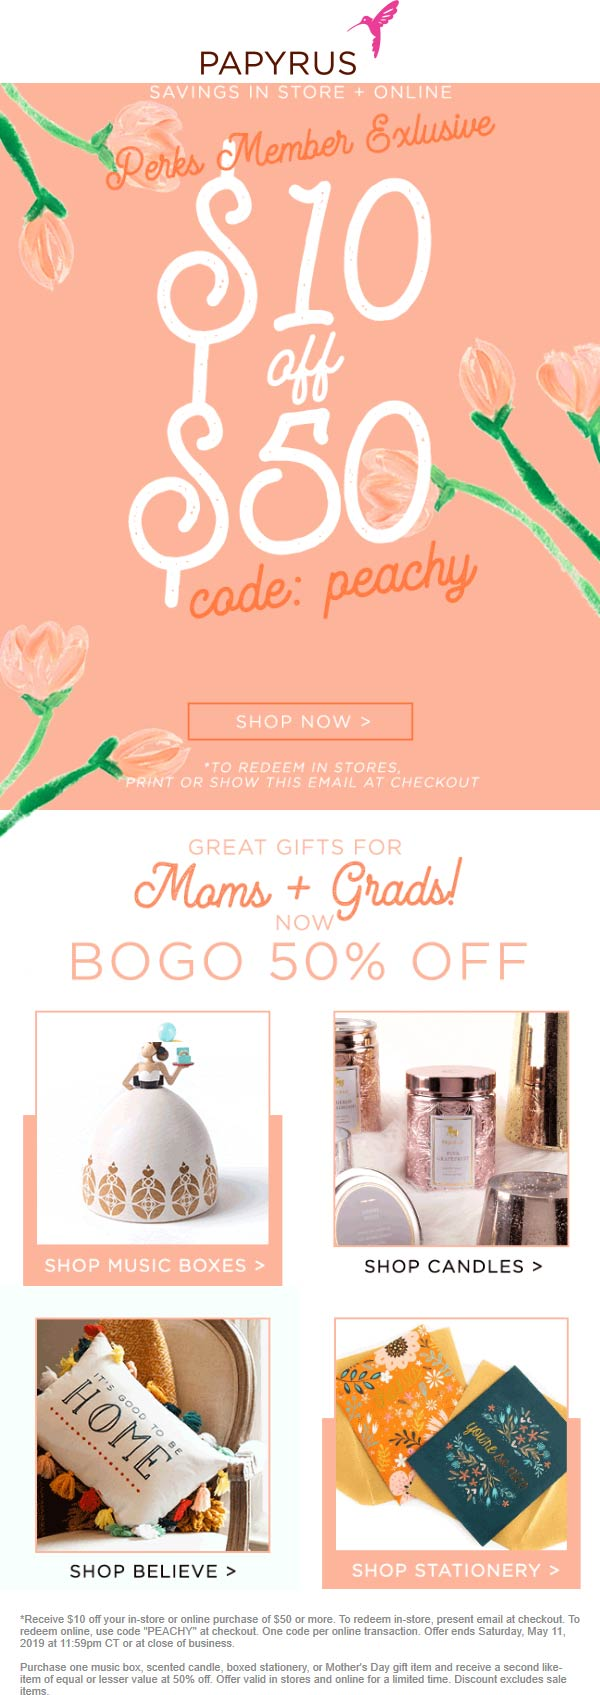 Papyrus coupons & promo code for [April 2020]